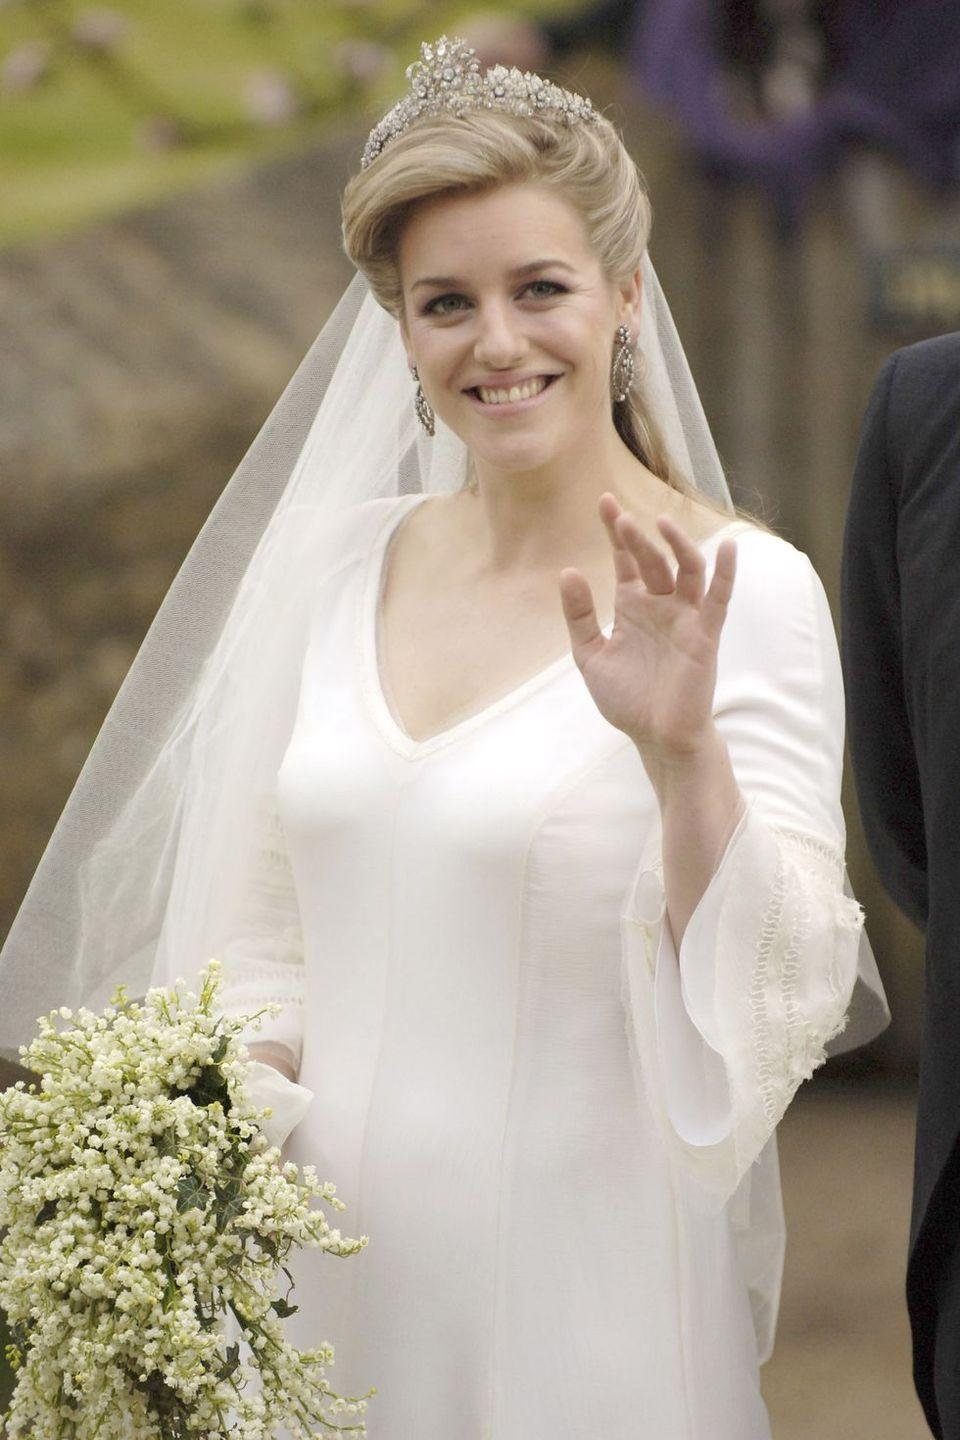 "<p><strong>Wedding date: </strong>May 6, 2006</p><p><strong>Wedding tiara: </strong>Laura Lopes, <a href=""https://www.townandcountrymag.com/society/tradition/a17008420/camilla-parker-bowles-children/"" rel=""nofollow noopener"" target=""_blank"" data-ylk=""slk:the daughter of Camilla, Duchess of Cornwall"" class=""link rapid-noclick-resp"">the daughter of Camilla, Duchess of Cornwall</a> and her first husband Andrew Parker Bowles, wore a family heirloom, <a href=""http://www.thecourtjeweller.com/2017/02/the-cubitt-tiara.html"" rel=""nofollow noopener"" target=""_blank"" data-ylk=""slk:the Cubitt-Shand tiara"" class=""link rapid-noclick-resp"">the Cubitt-Shand tiara</a>, on her wedding day. The tiara once belonged to Camilla's grandmother, Sonia Cubitt, and later to Camilla's mother, Rosalind Shand. The floral tiara was also worn by Camilla at her first wedding to Andrew back in 1973.</p>"